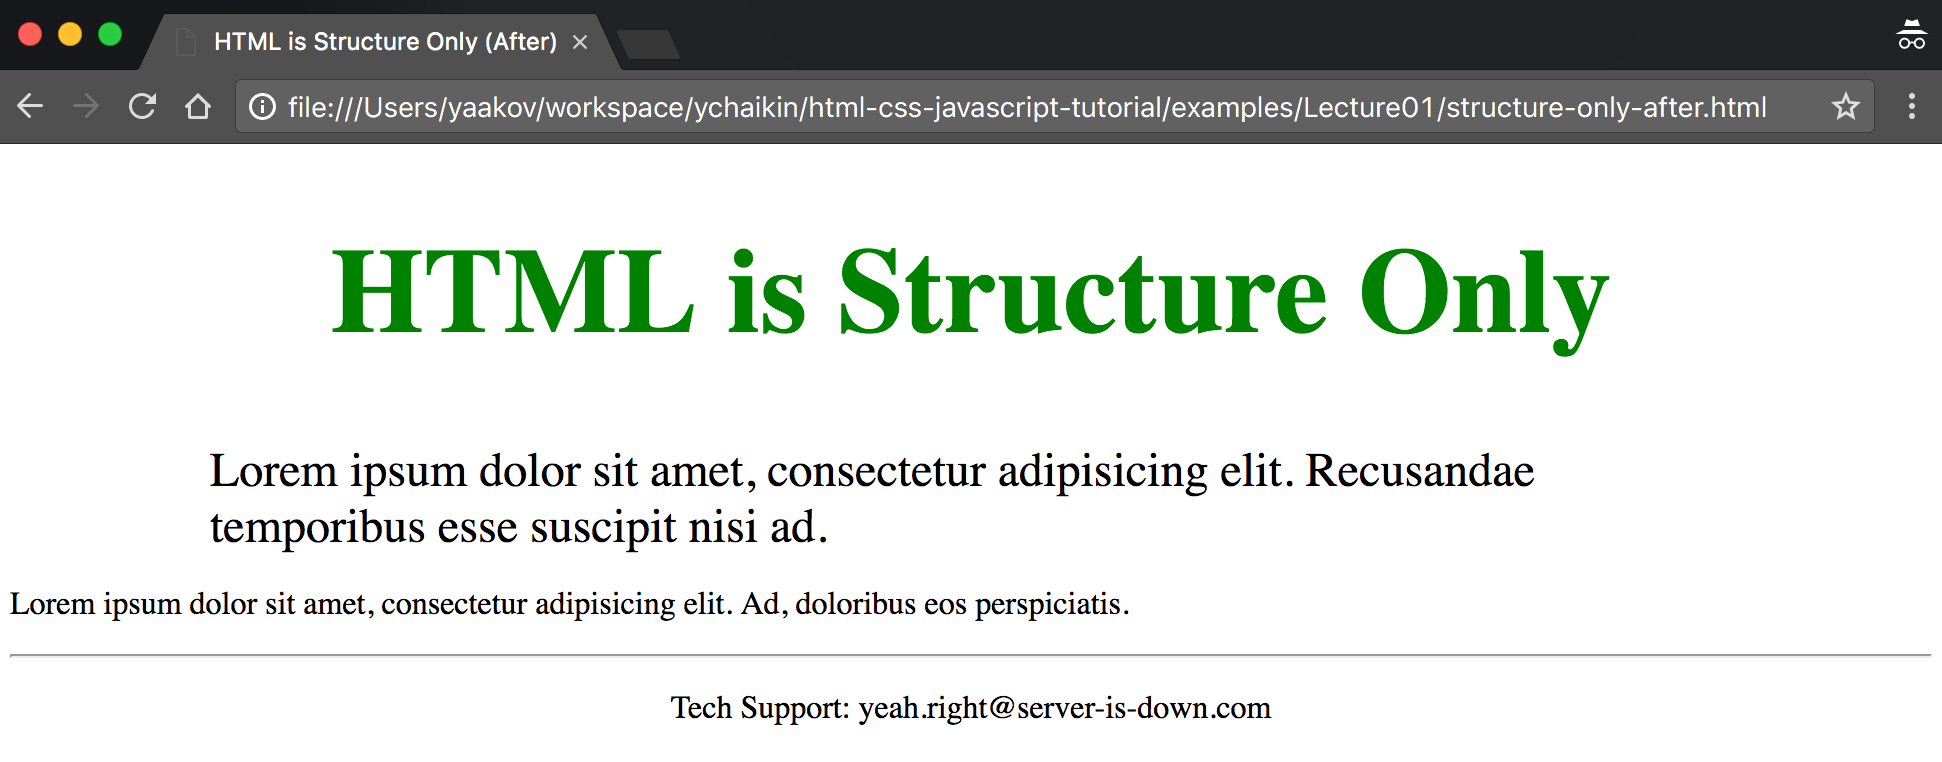 Screenshot of structure-only-after.html displayed in Chrome